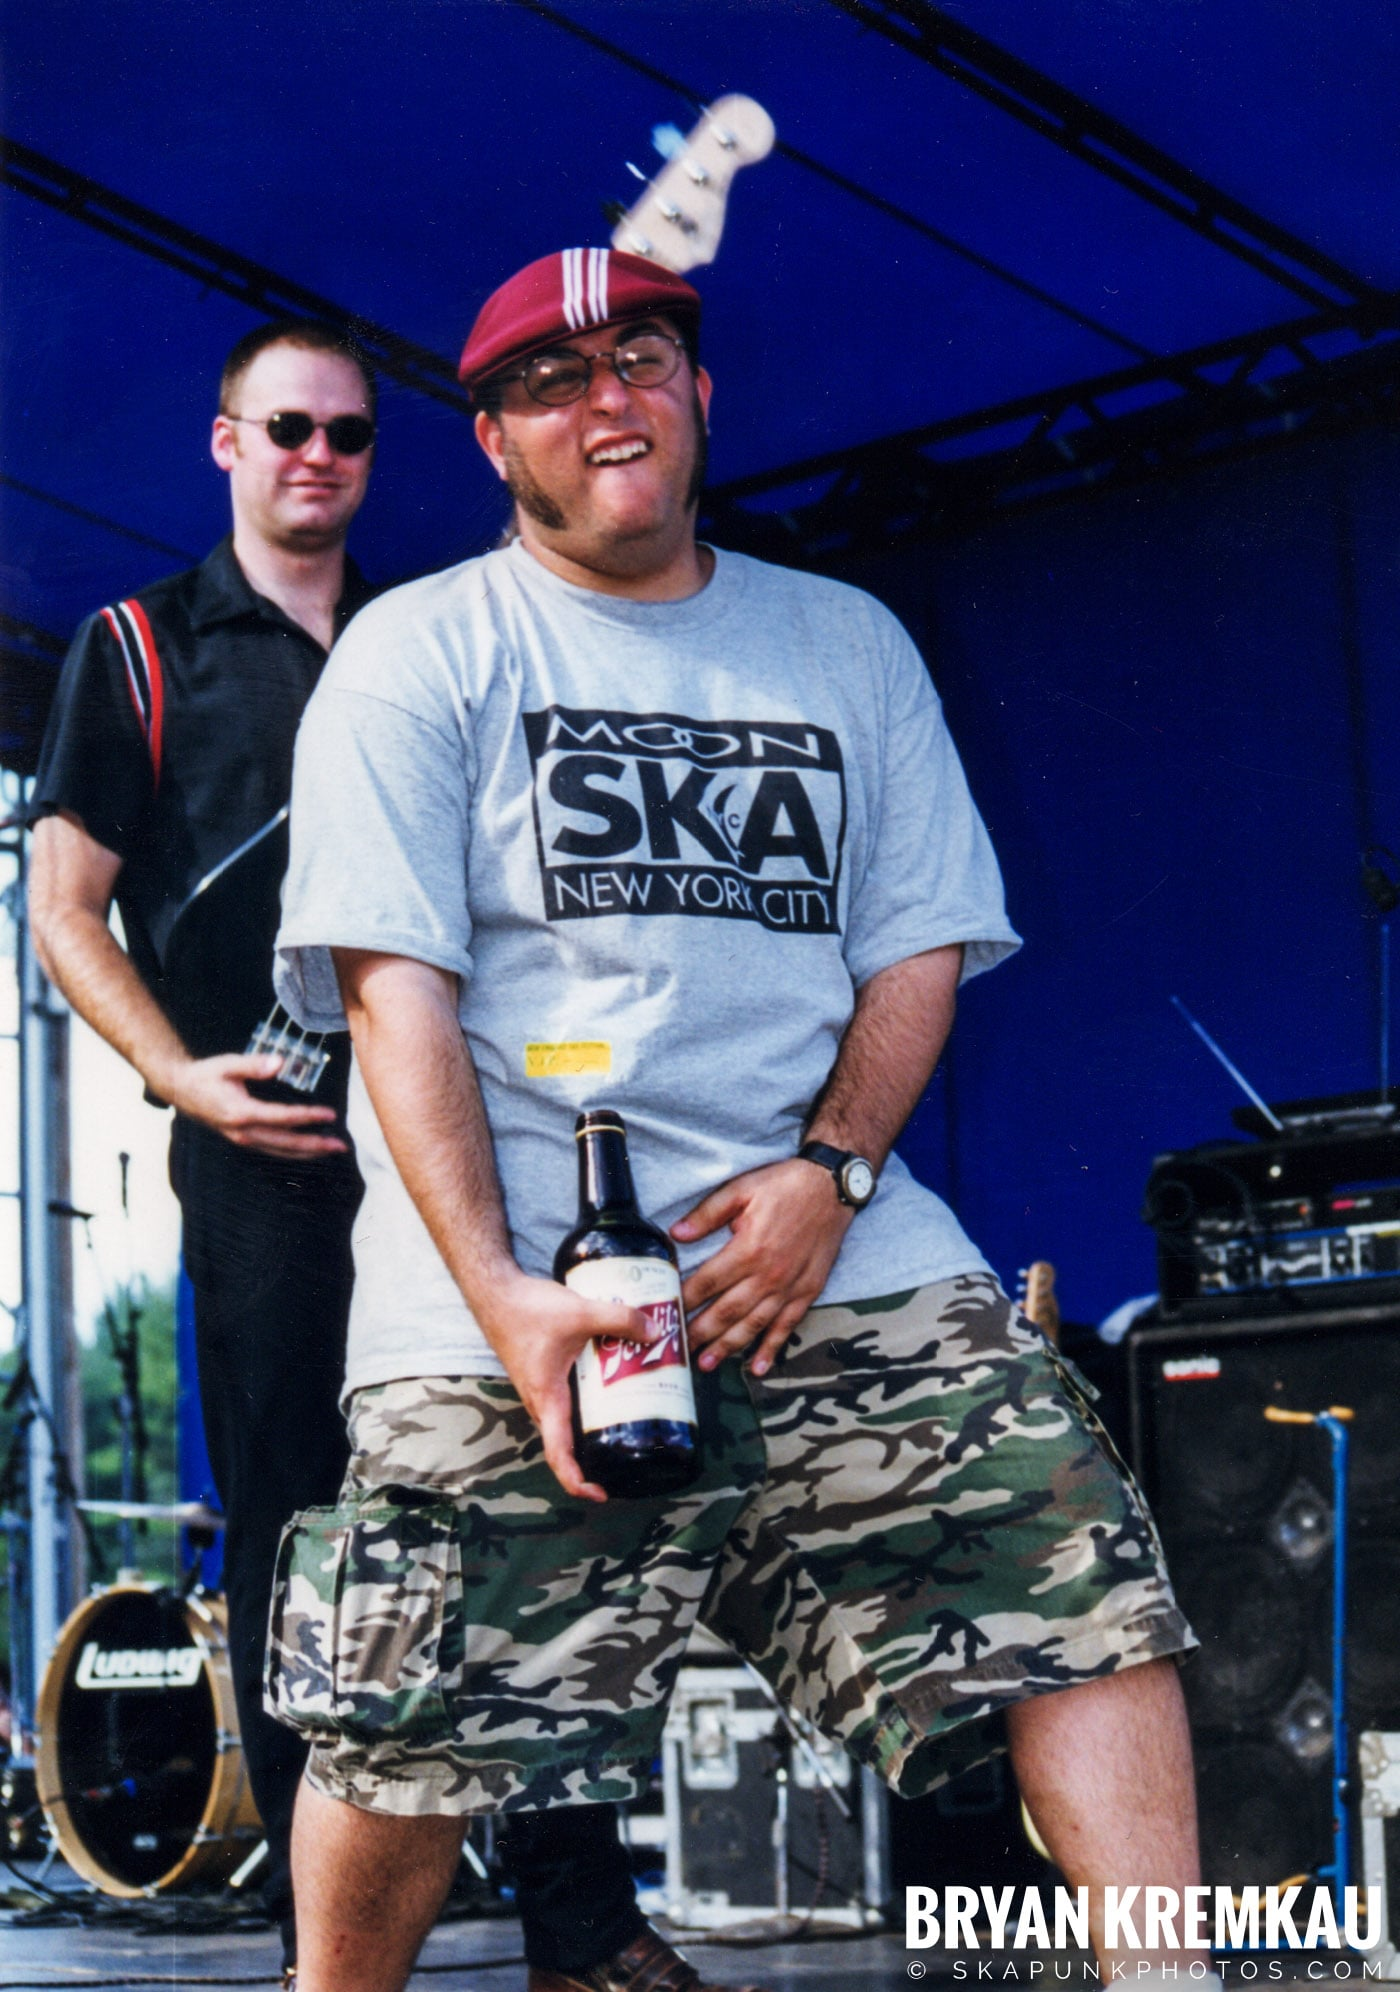 Crowd Shots @ New England Ska Fest 98, Westford, MA - 8.22.98 (12)